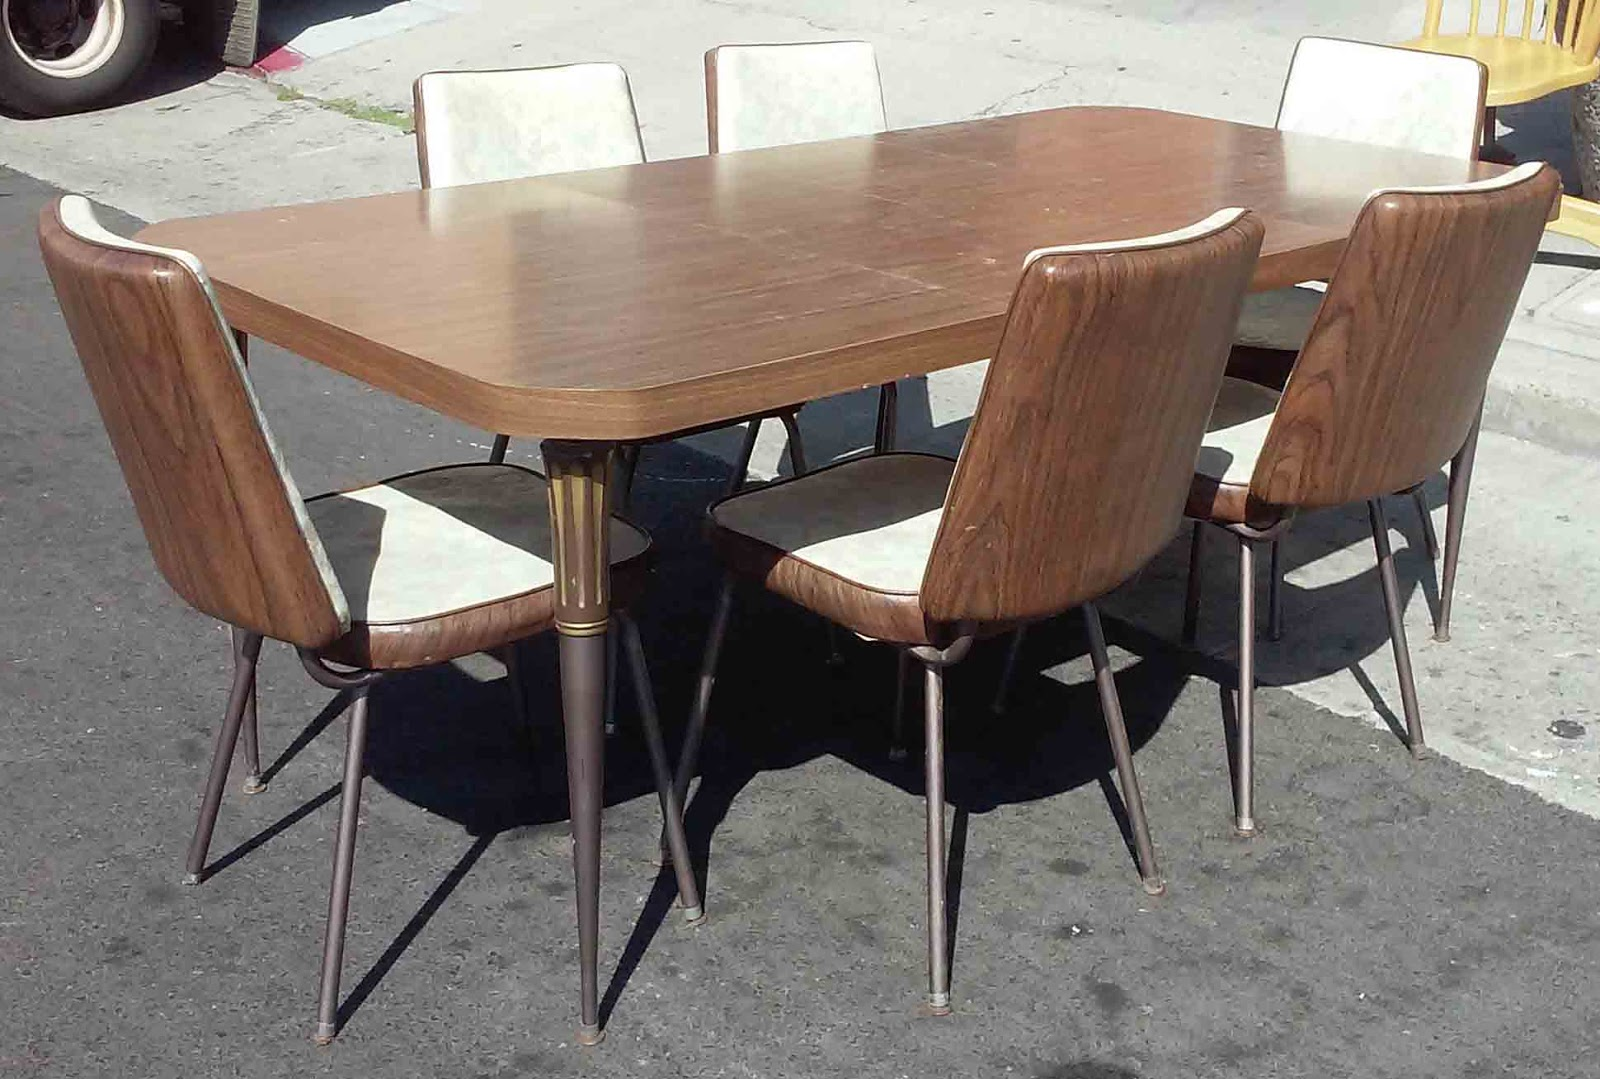 Charmant SOLD *REDUCED * 70u0027s Vintage Formica Dining Set: Table, 2 Leaves, 6 Chairs    $50